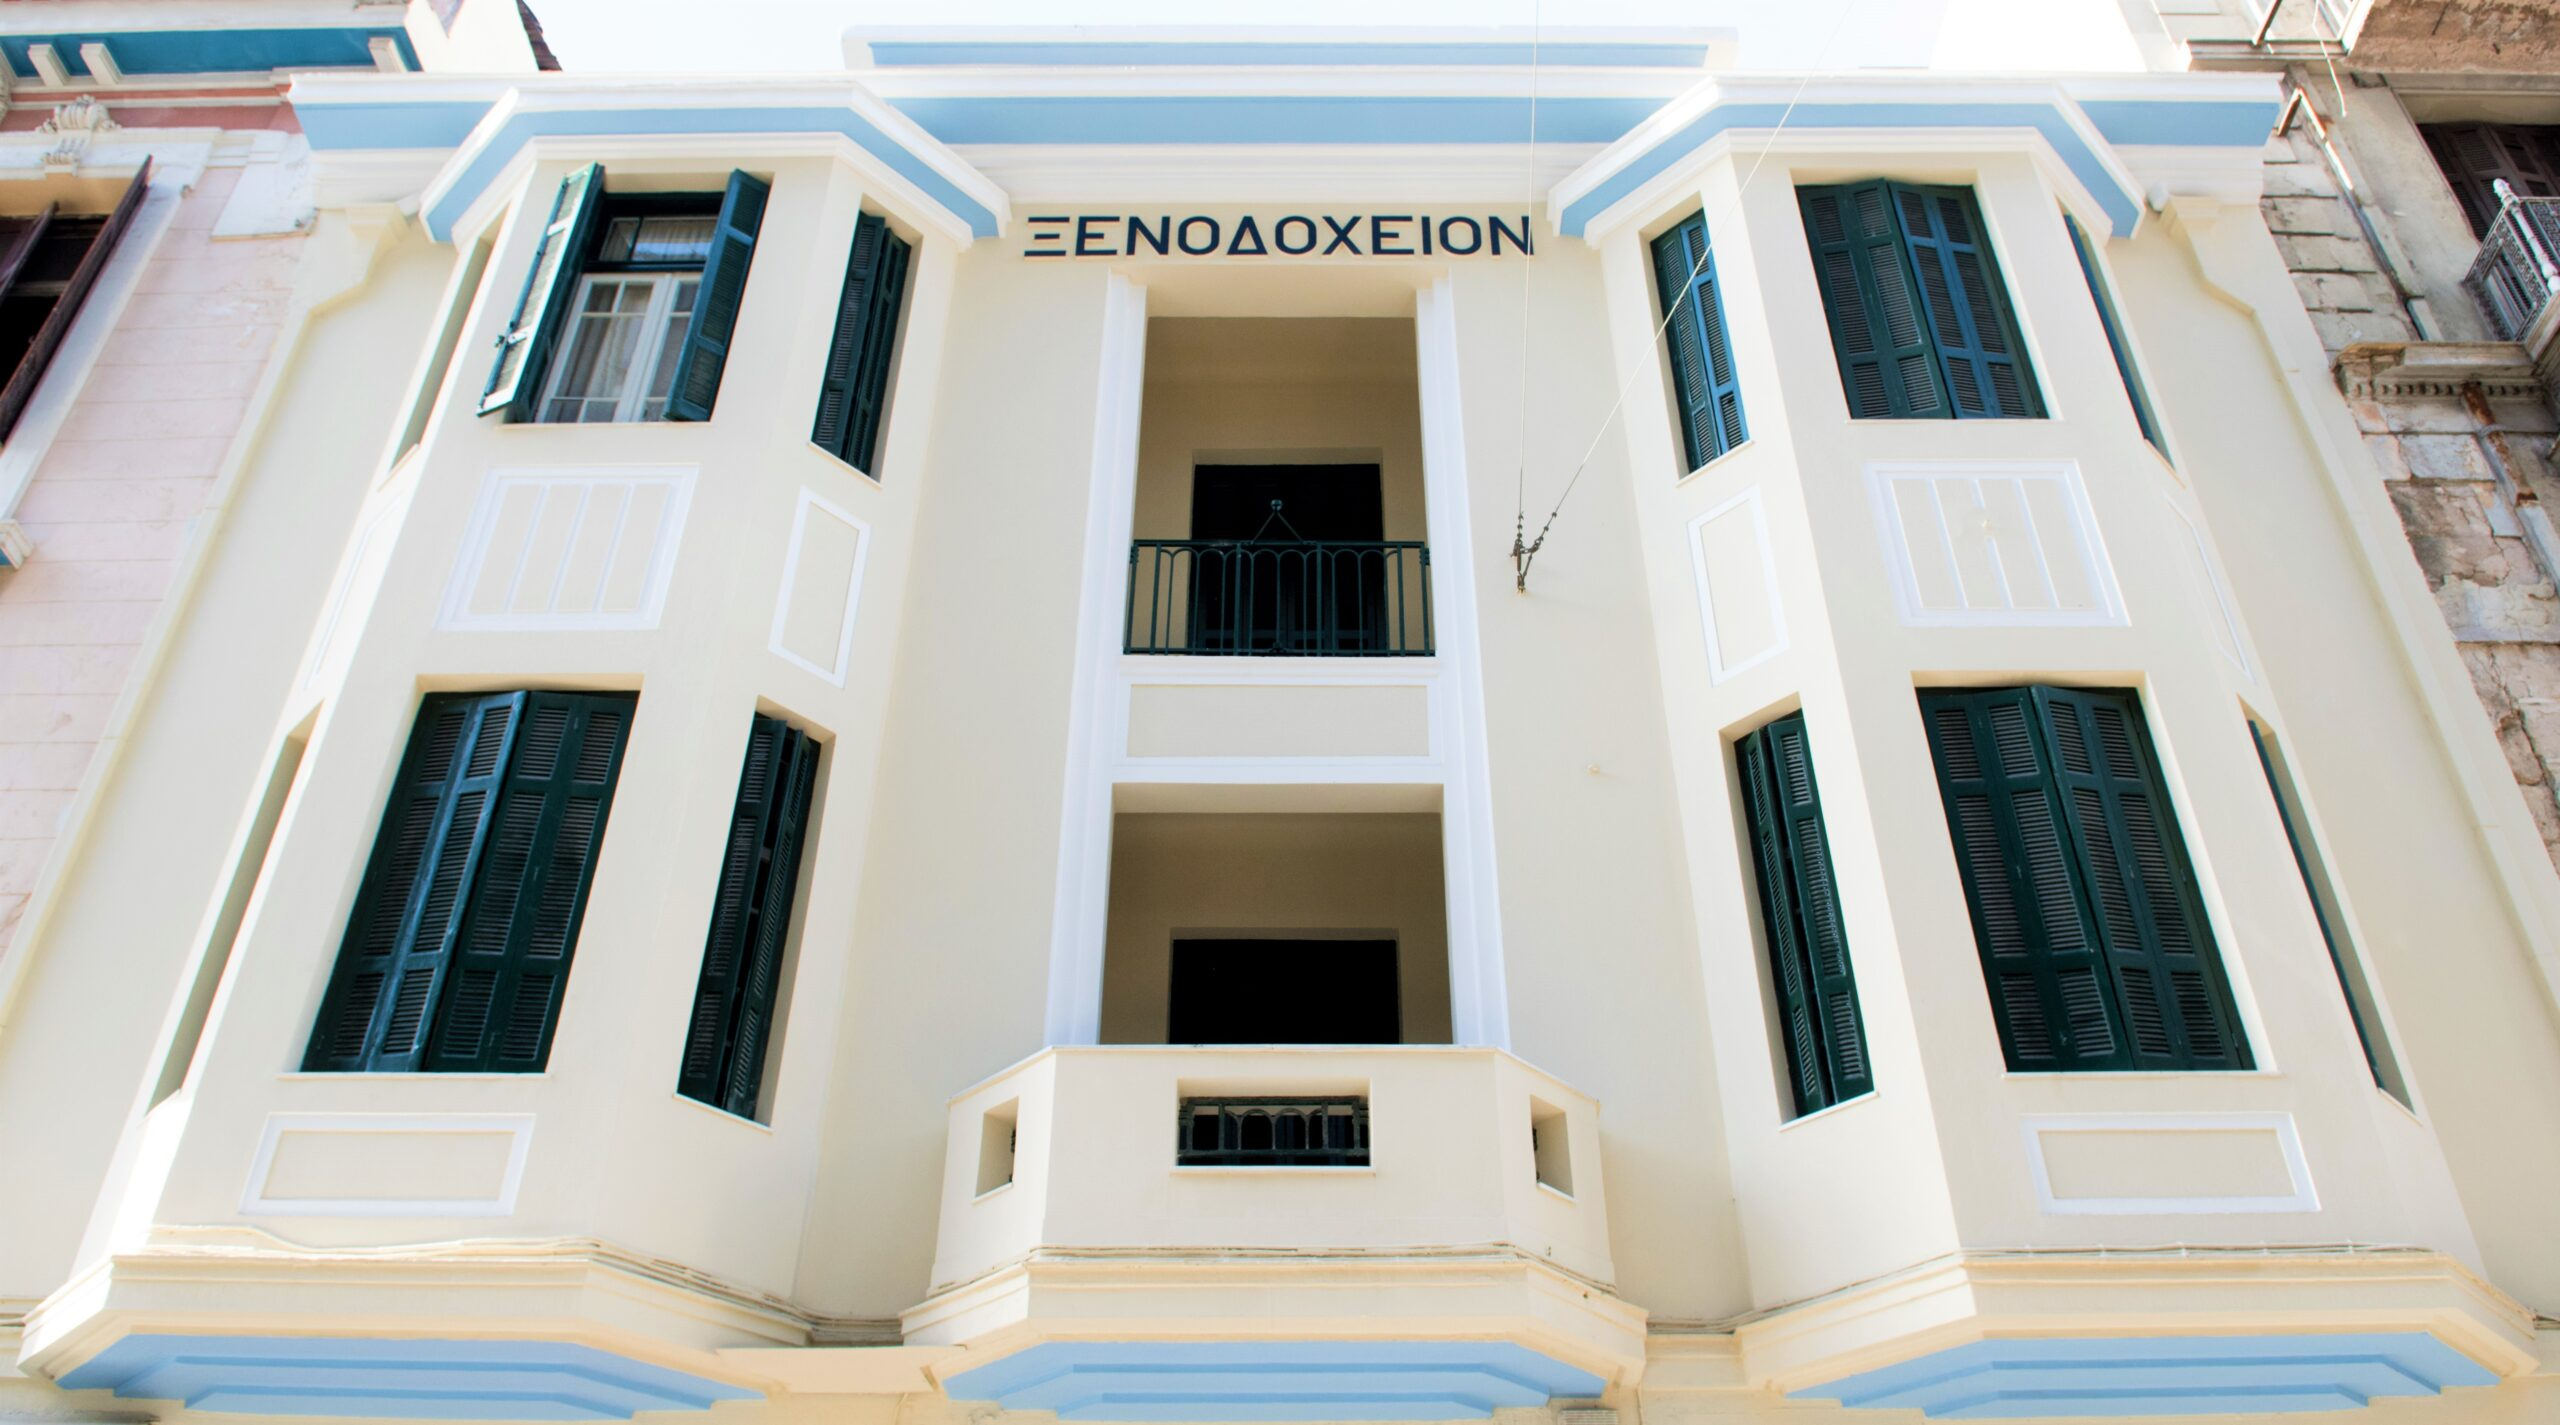 hotel-exterior-building-traditional-athens